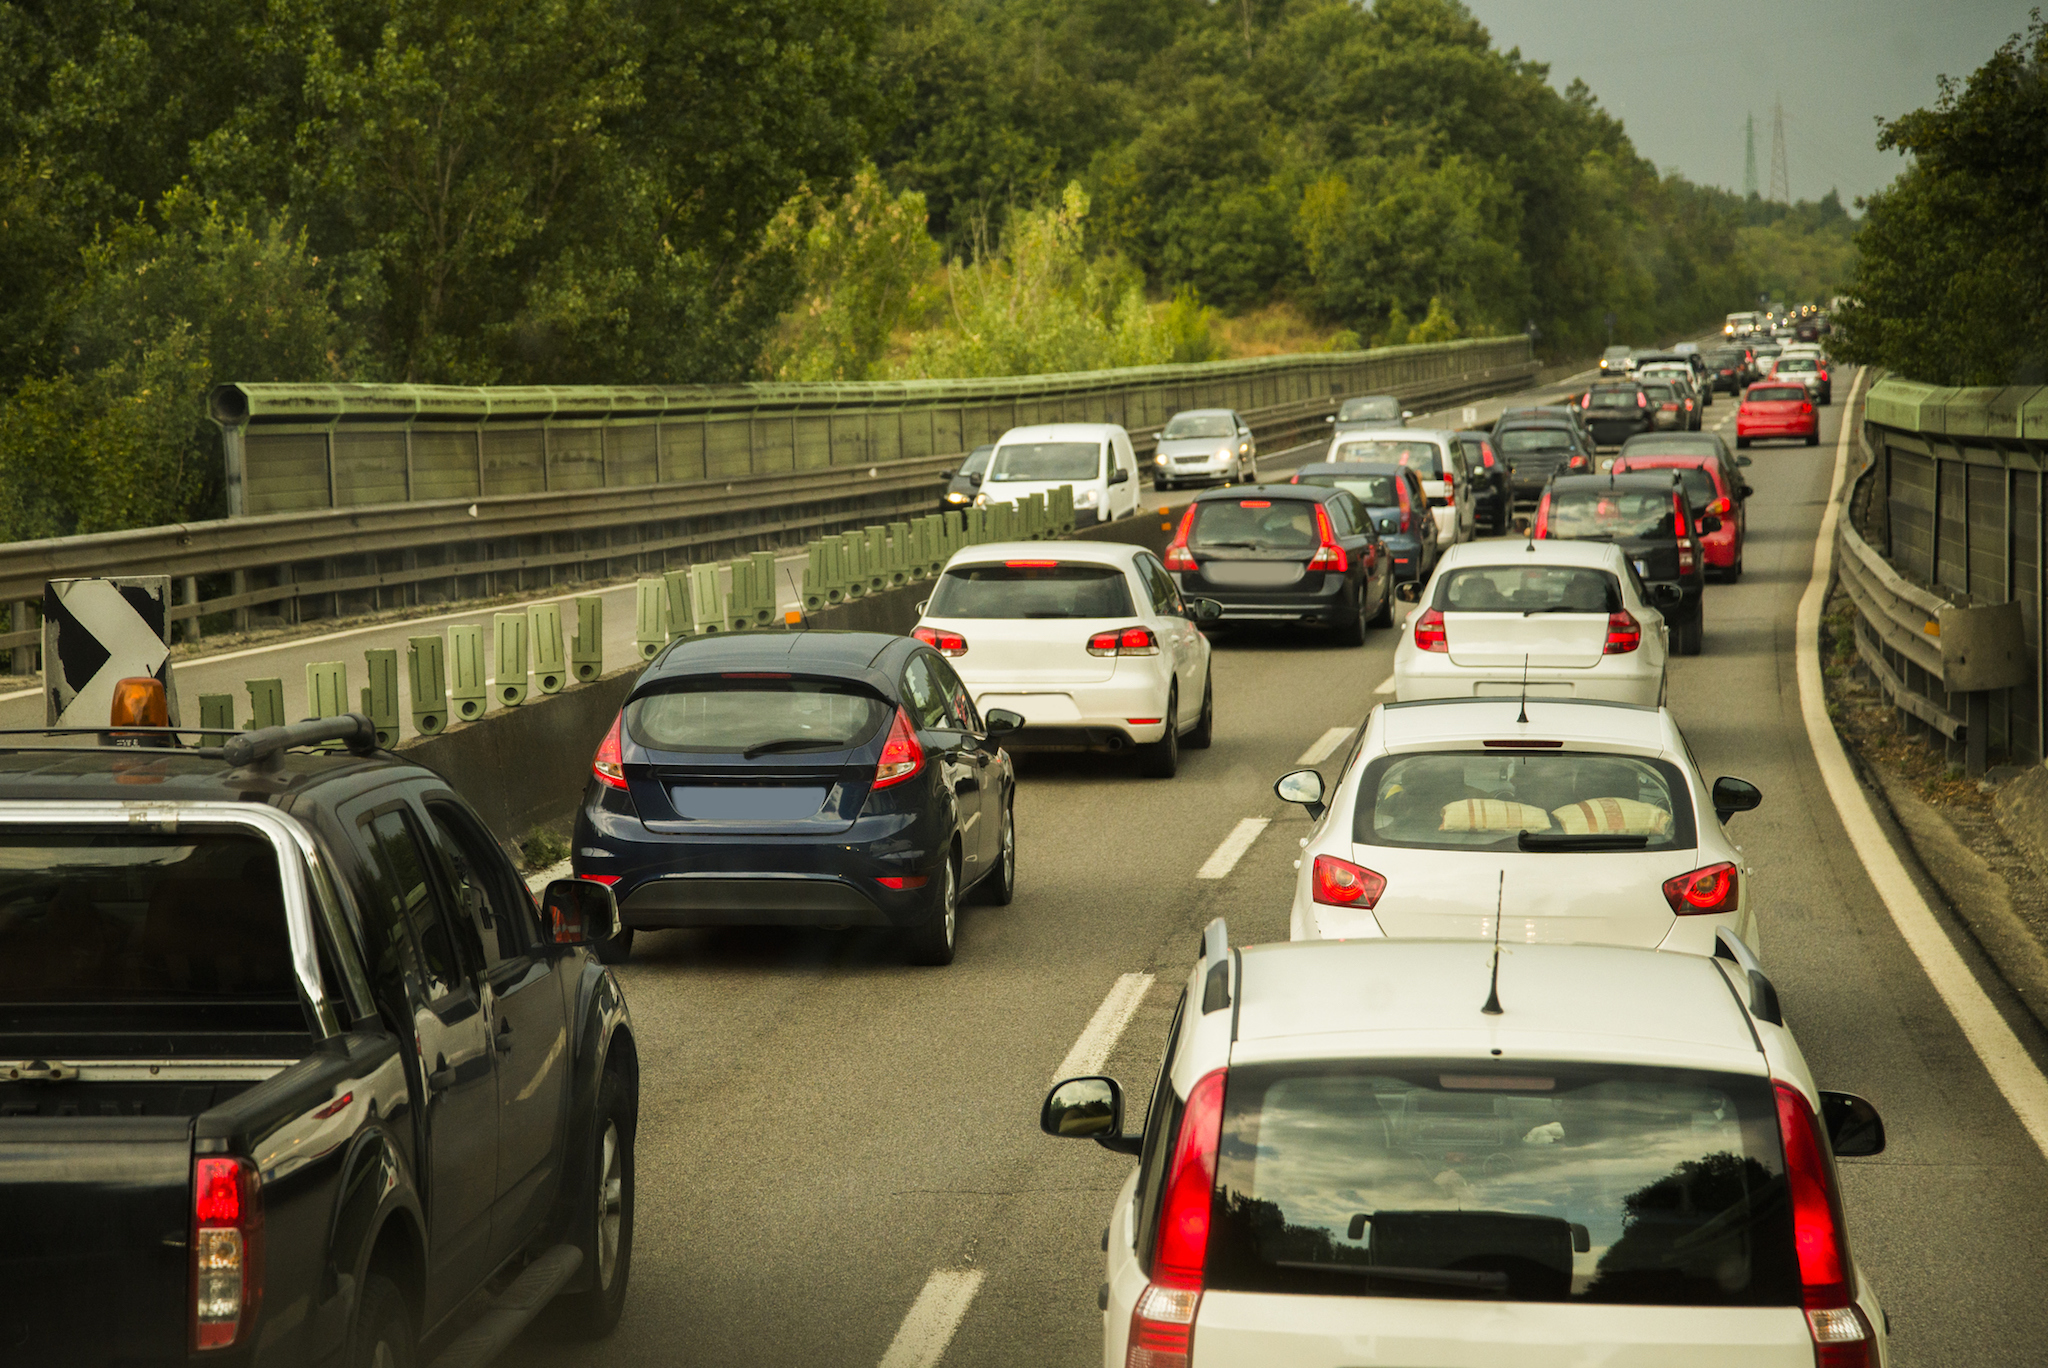 A traffic jam scene in a highway